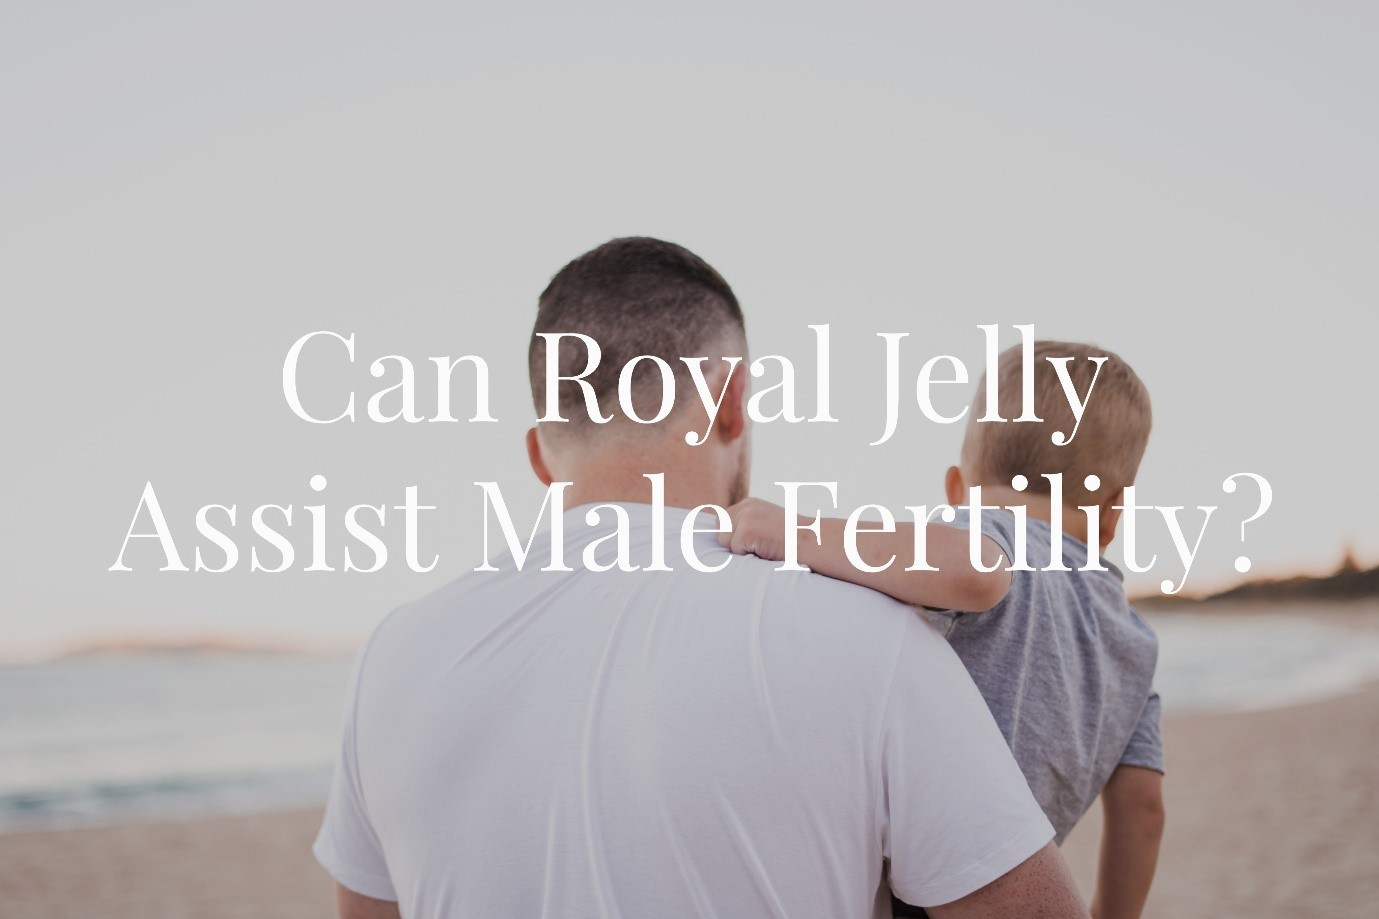 Can Royal Jelly Aid Male Fertility?